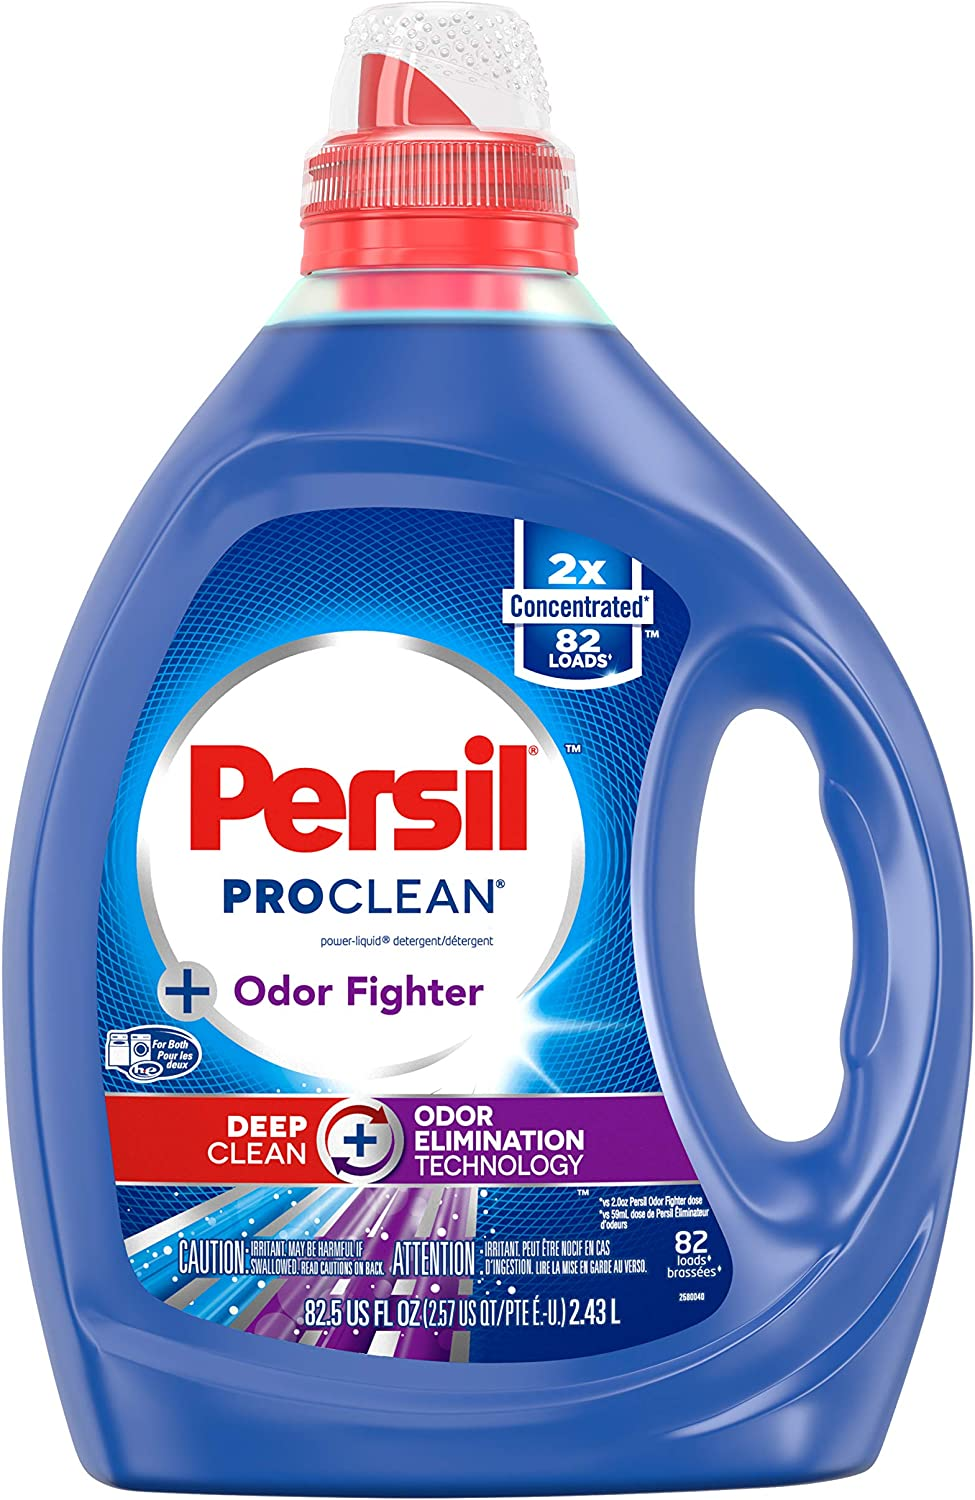 Persil ProClean Liquid Laundry Detergent, Odor Fighter, 2X Concentrated, 82 Loads, 82.5